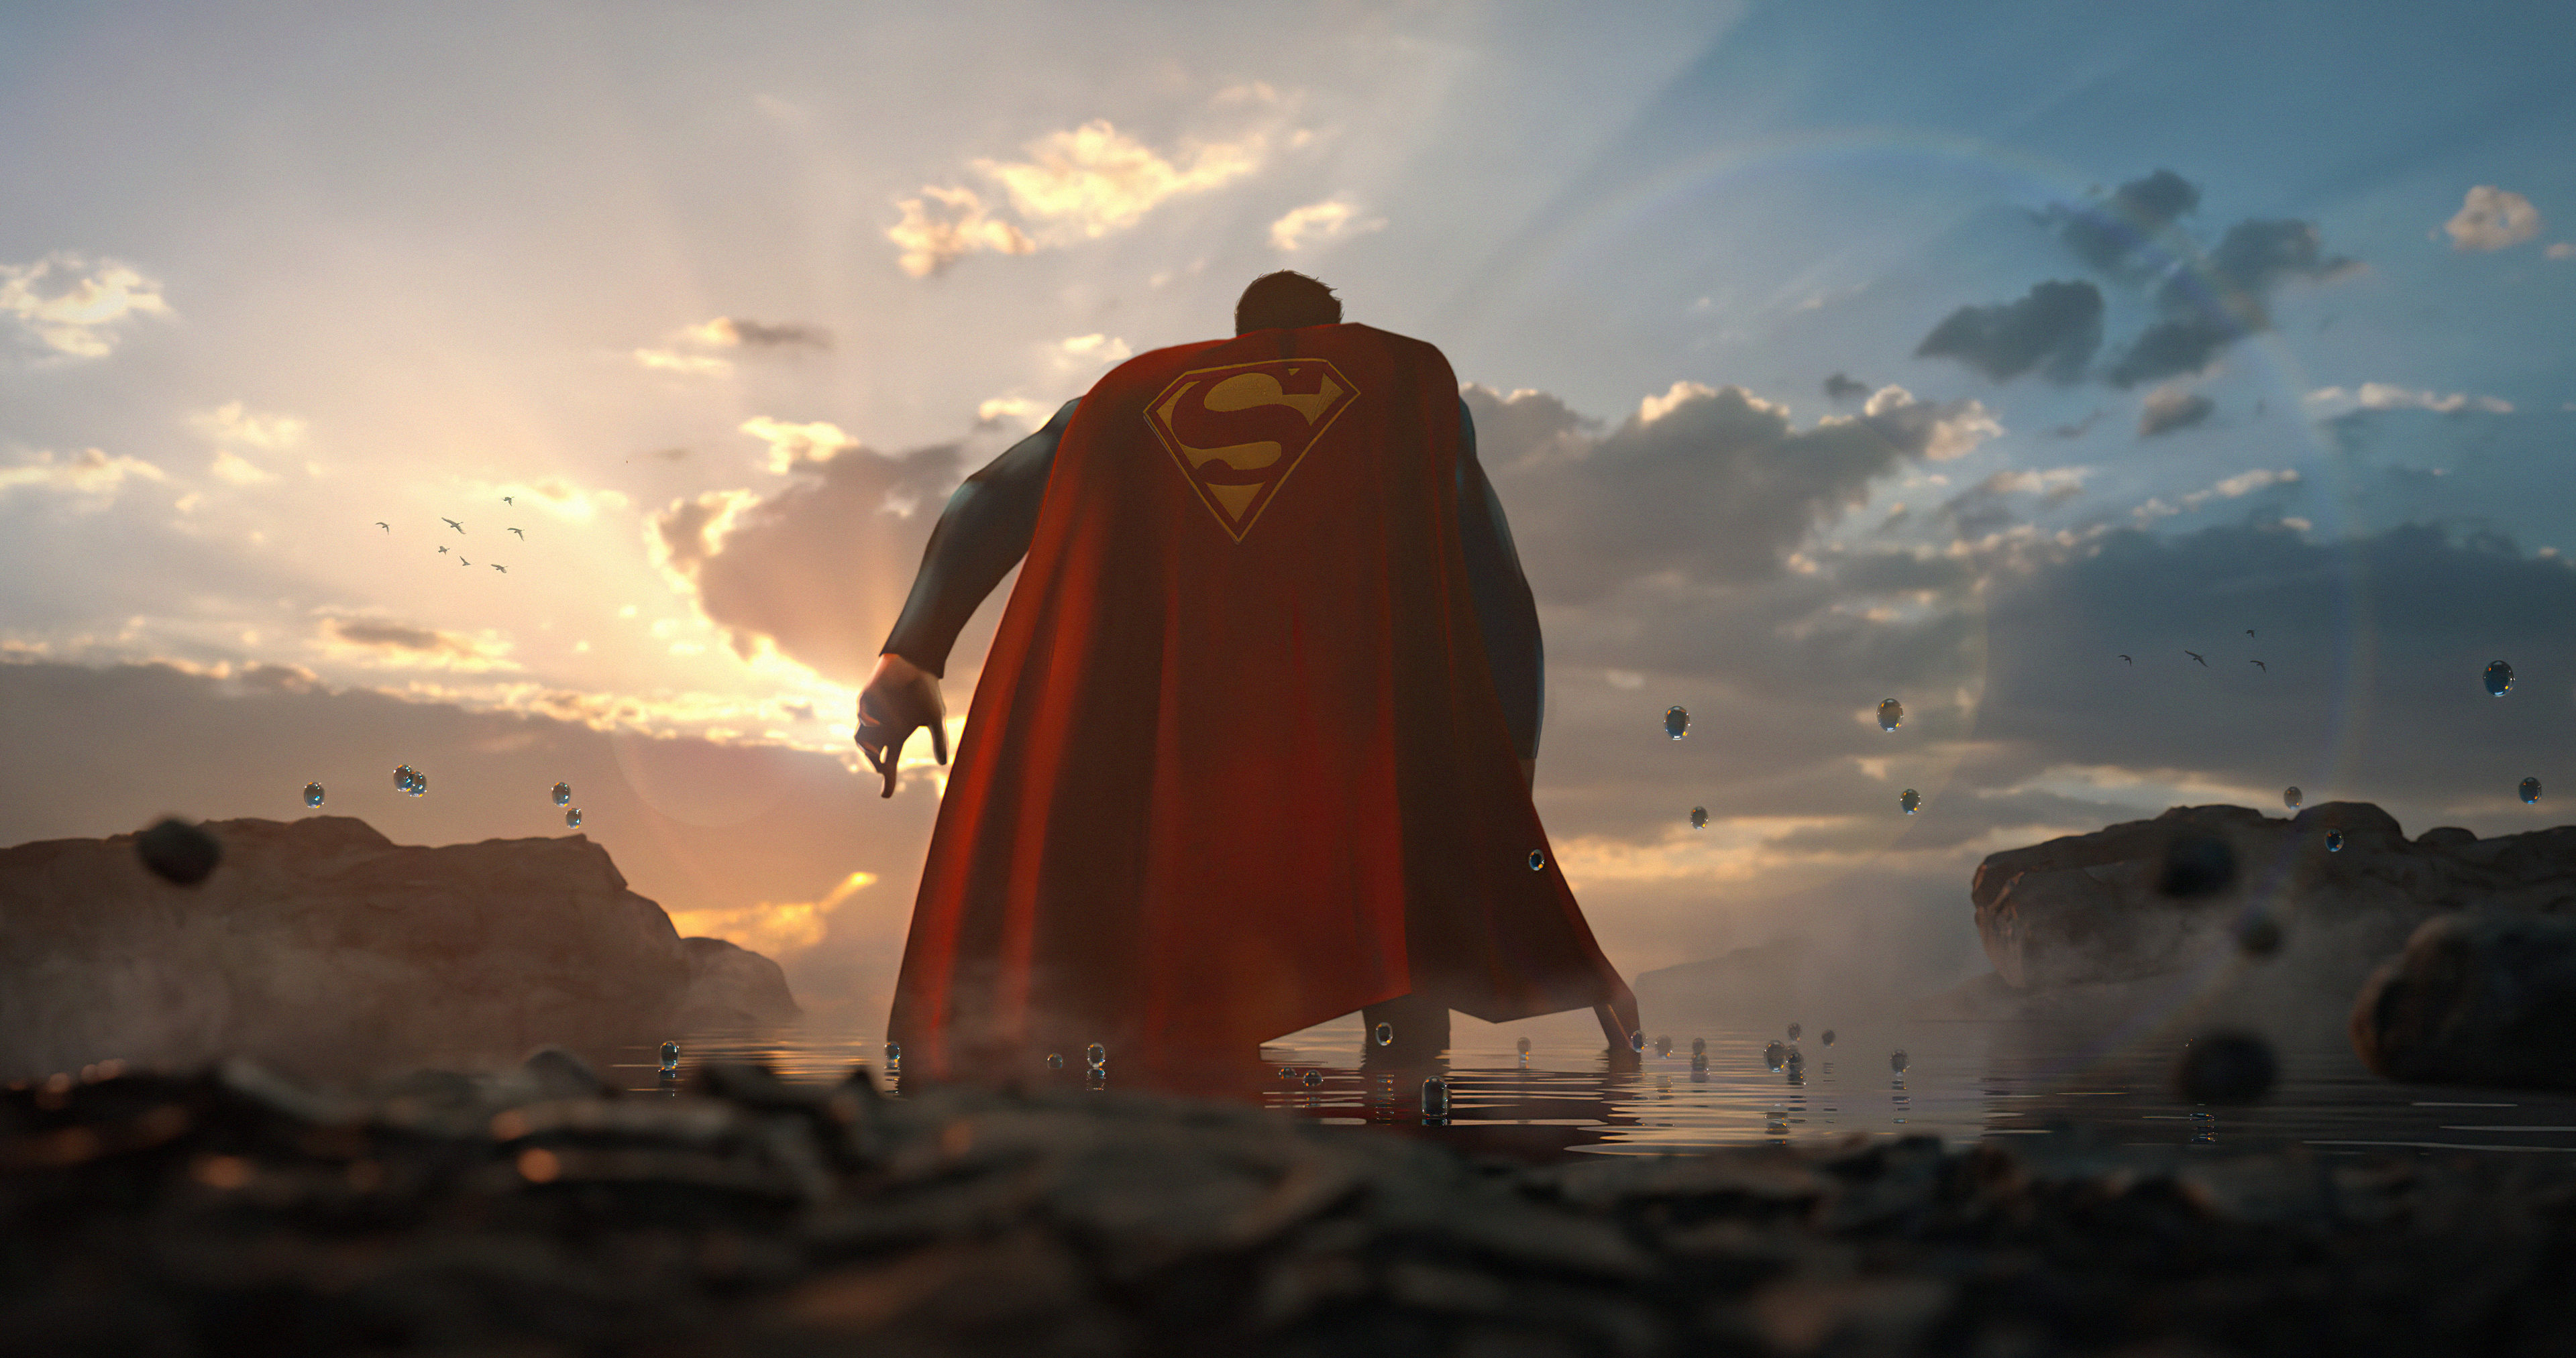 Wallpaper Superman from the back